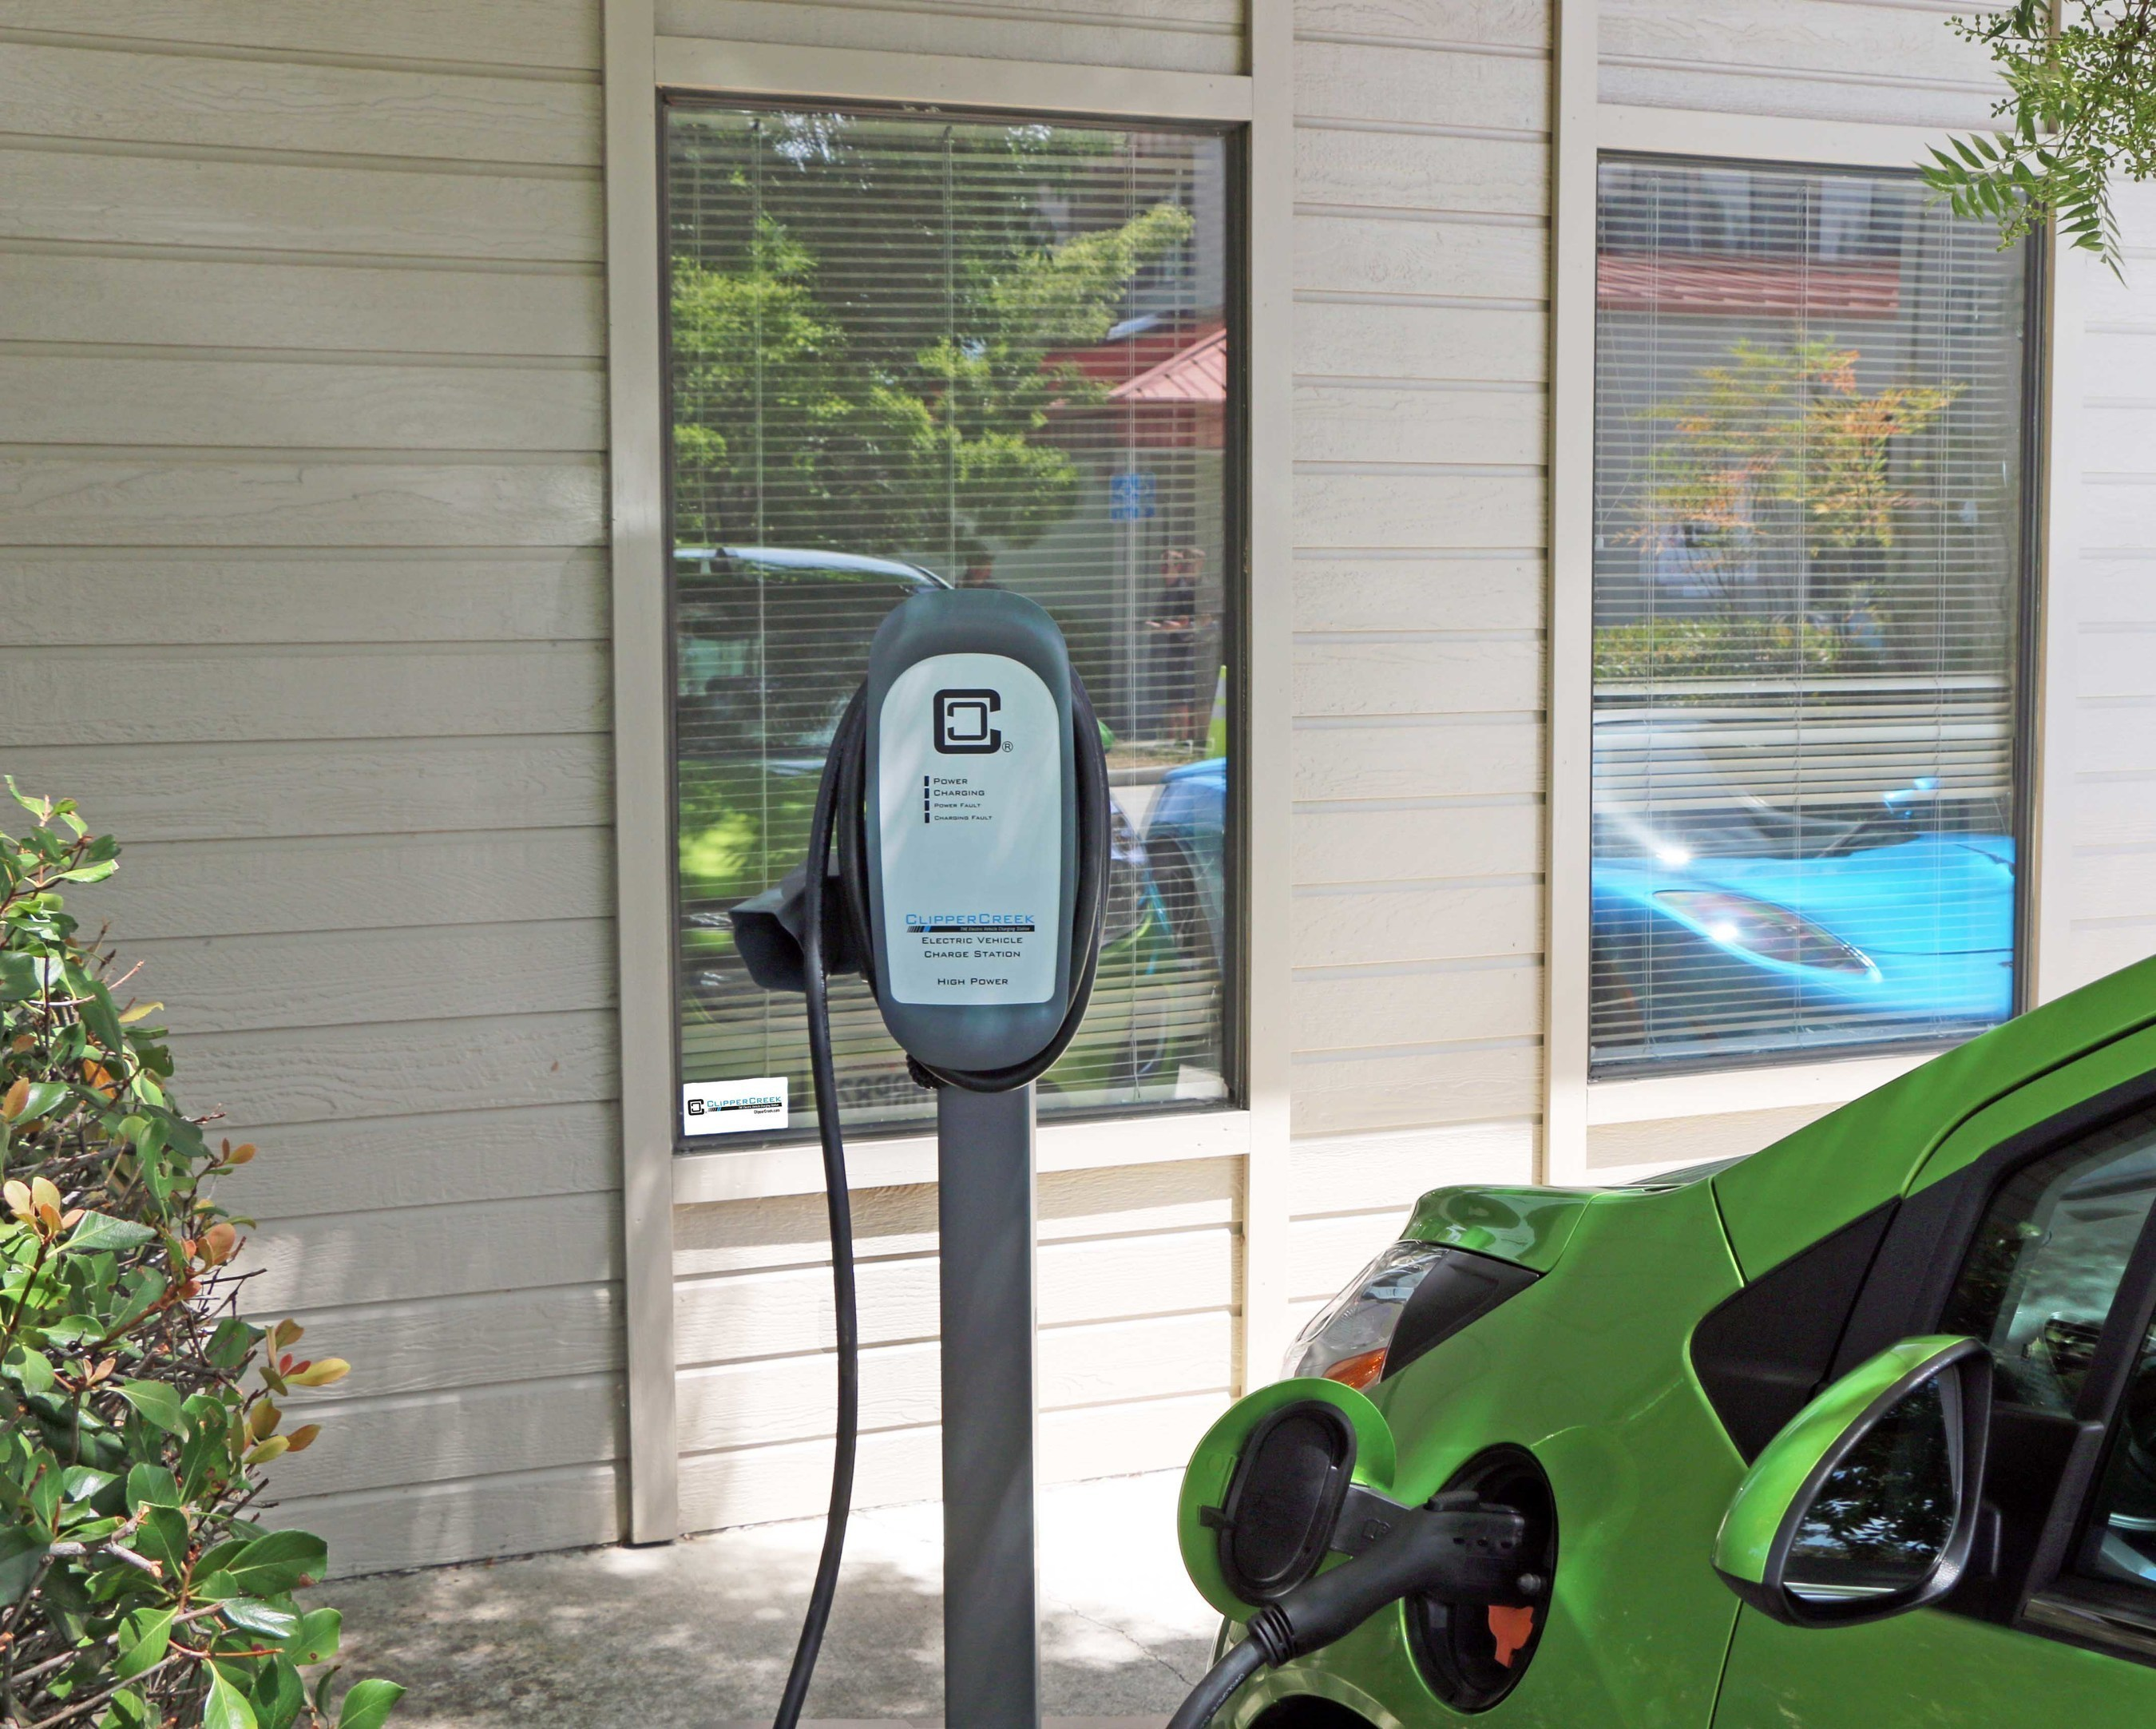 ClipperCreek Announces Availability of HCS-50 Electric Vehicle Charging Station